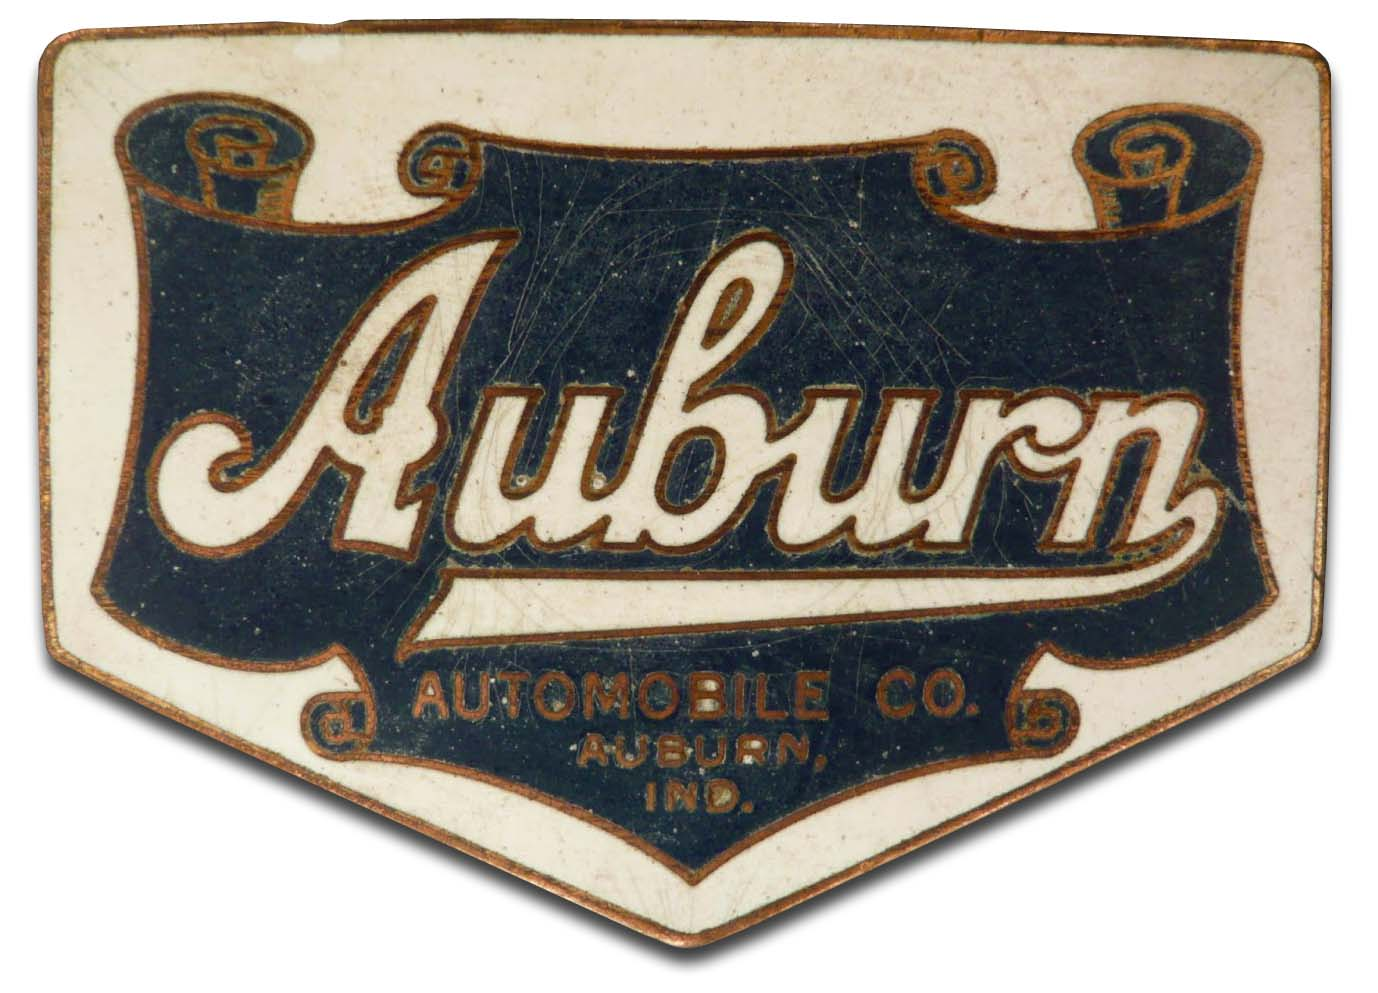 Auburn Automobile Co. (1916-1917 grill emblem)